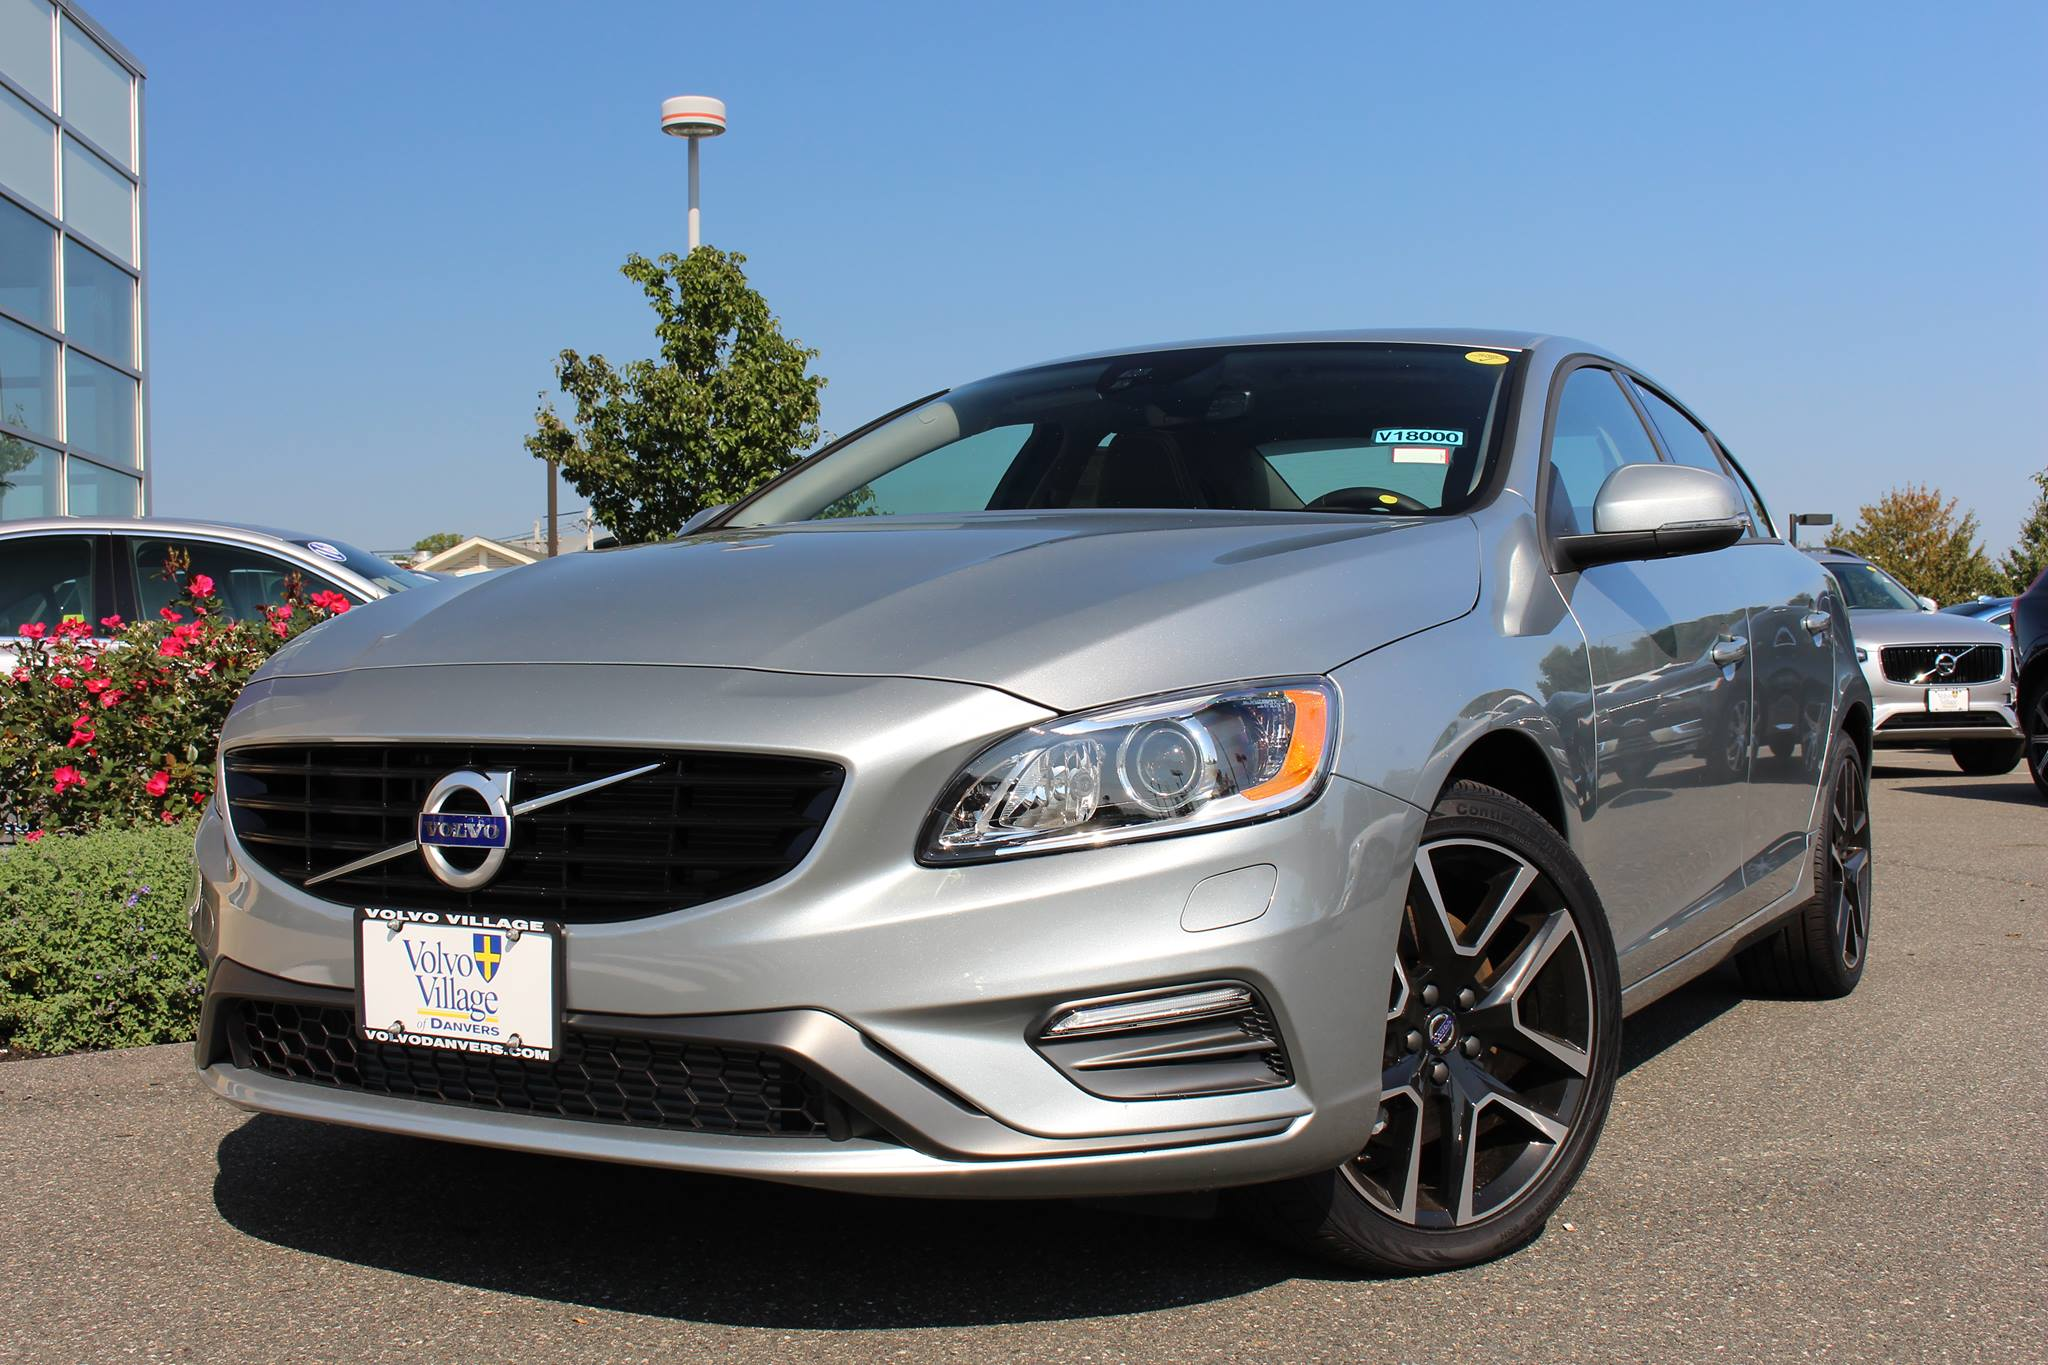 2018 volvo s60 t5 dynamic the perfect daily driver boston auto blog. Black Bedroom Furniture Sets. Home Design Ideas